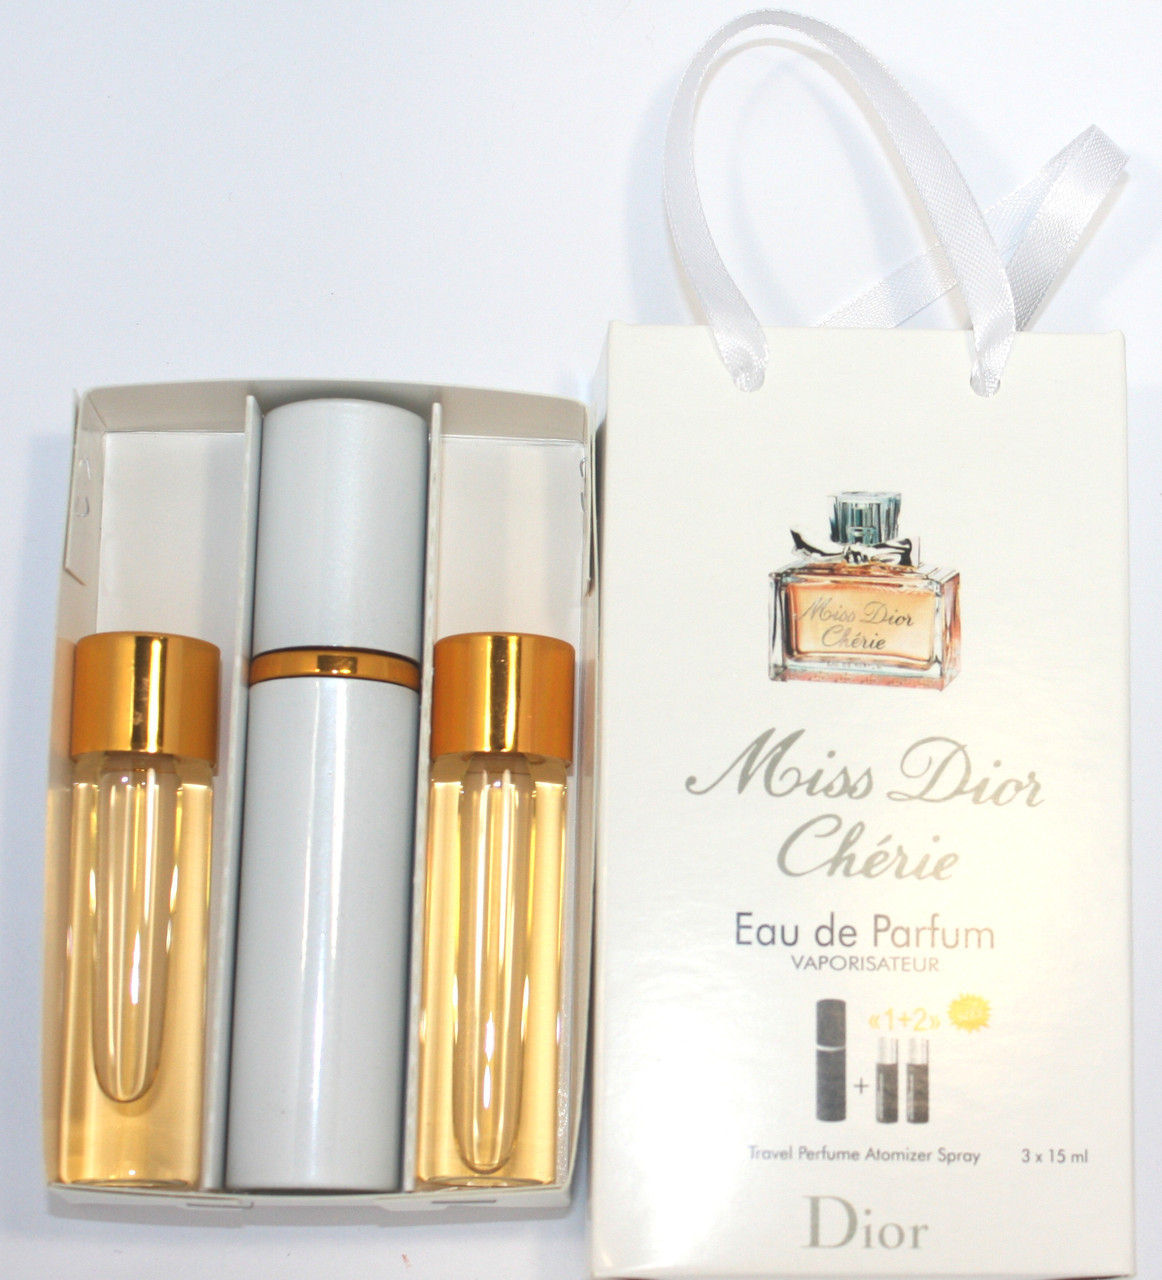 Christian Dior Miss Dior Cherie edt 3x15ml - Trio Bag